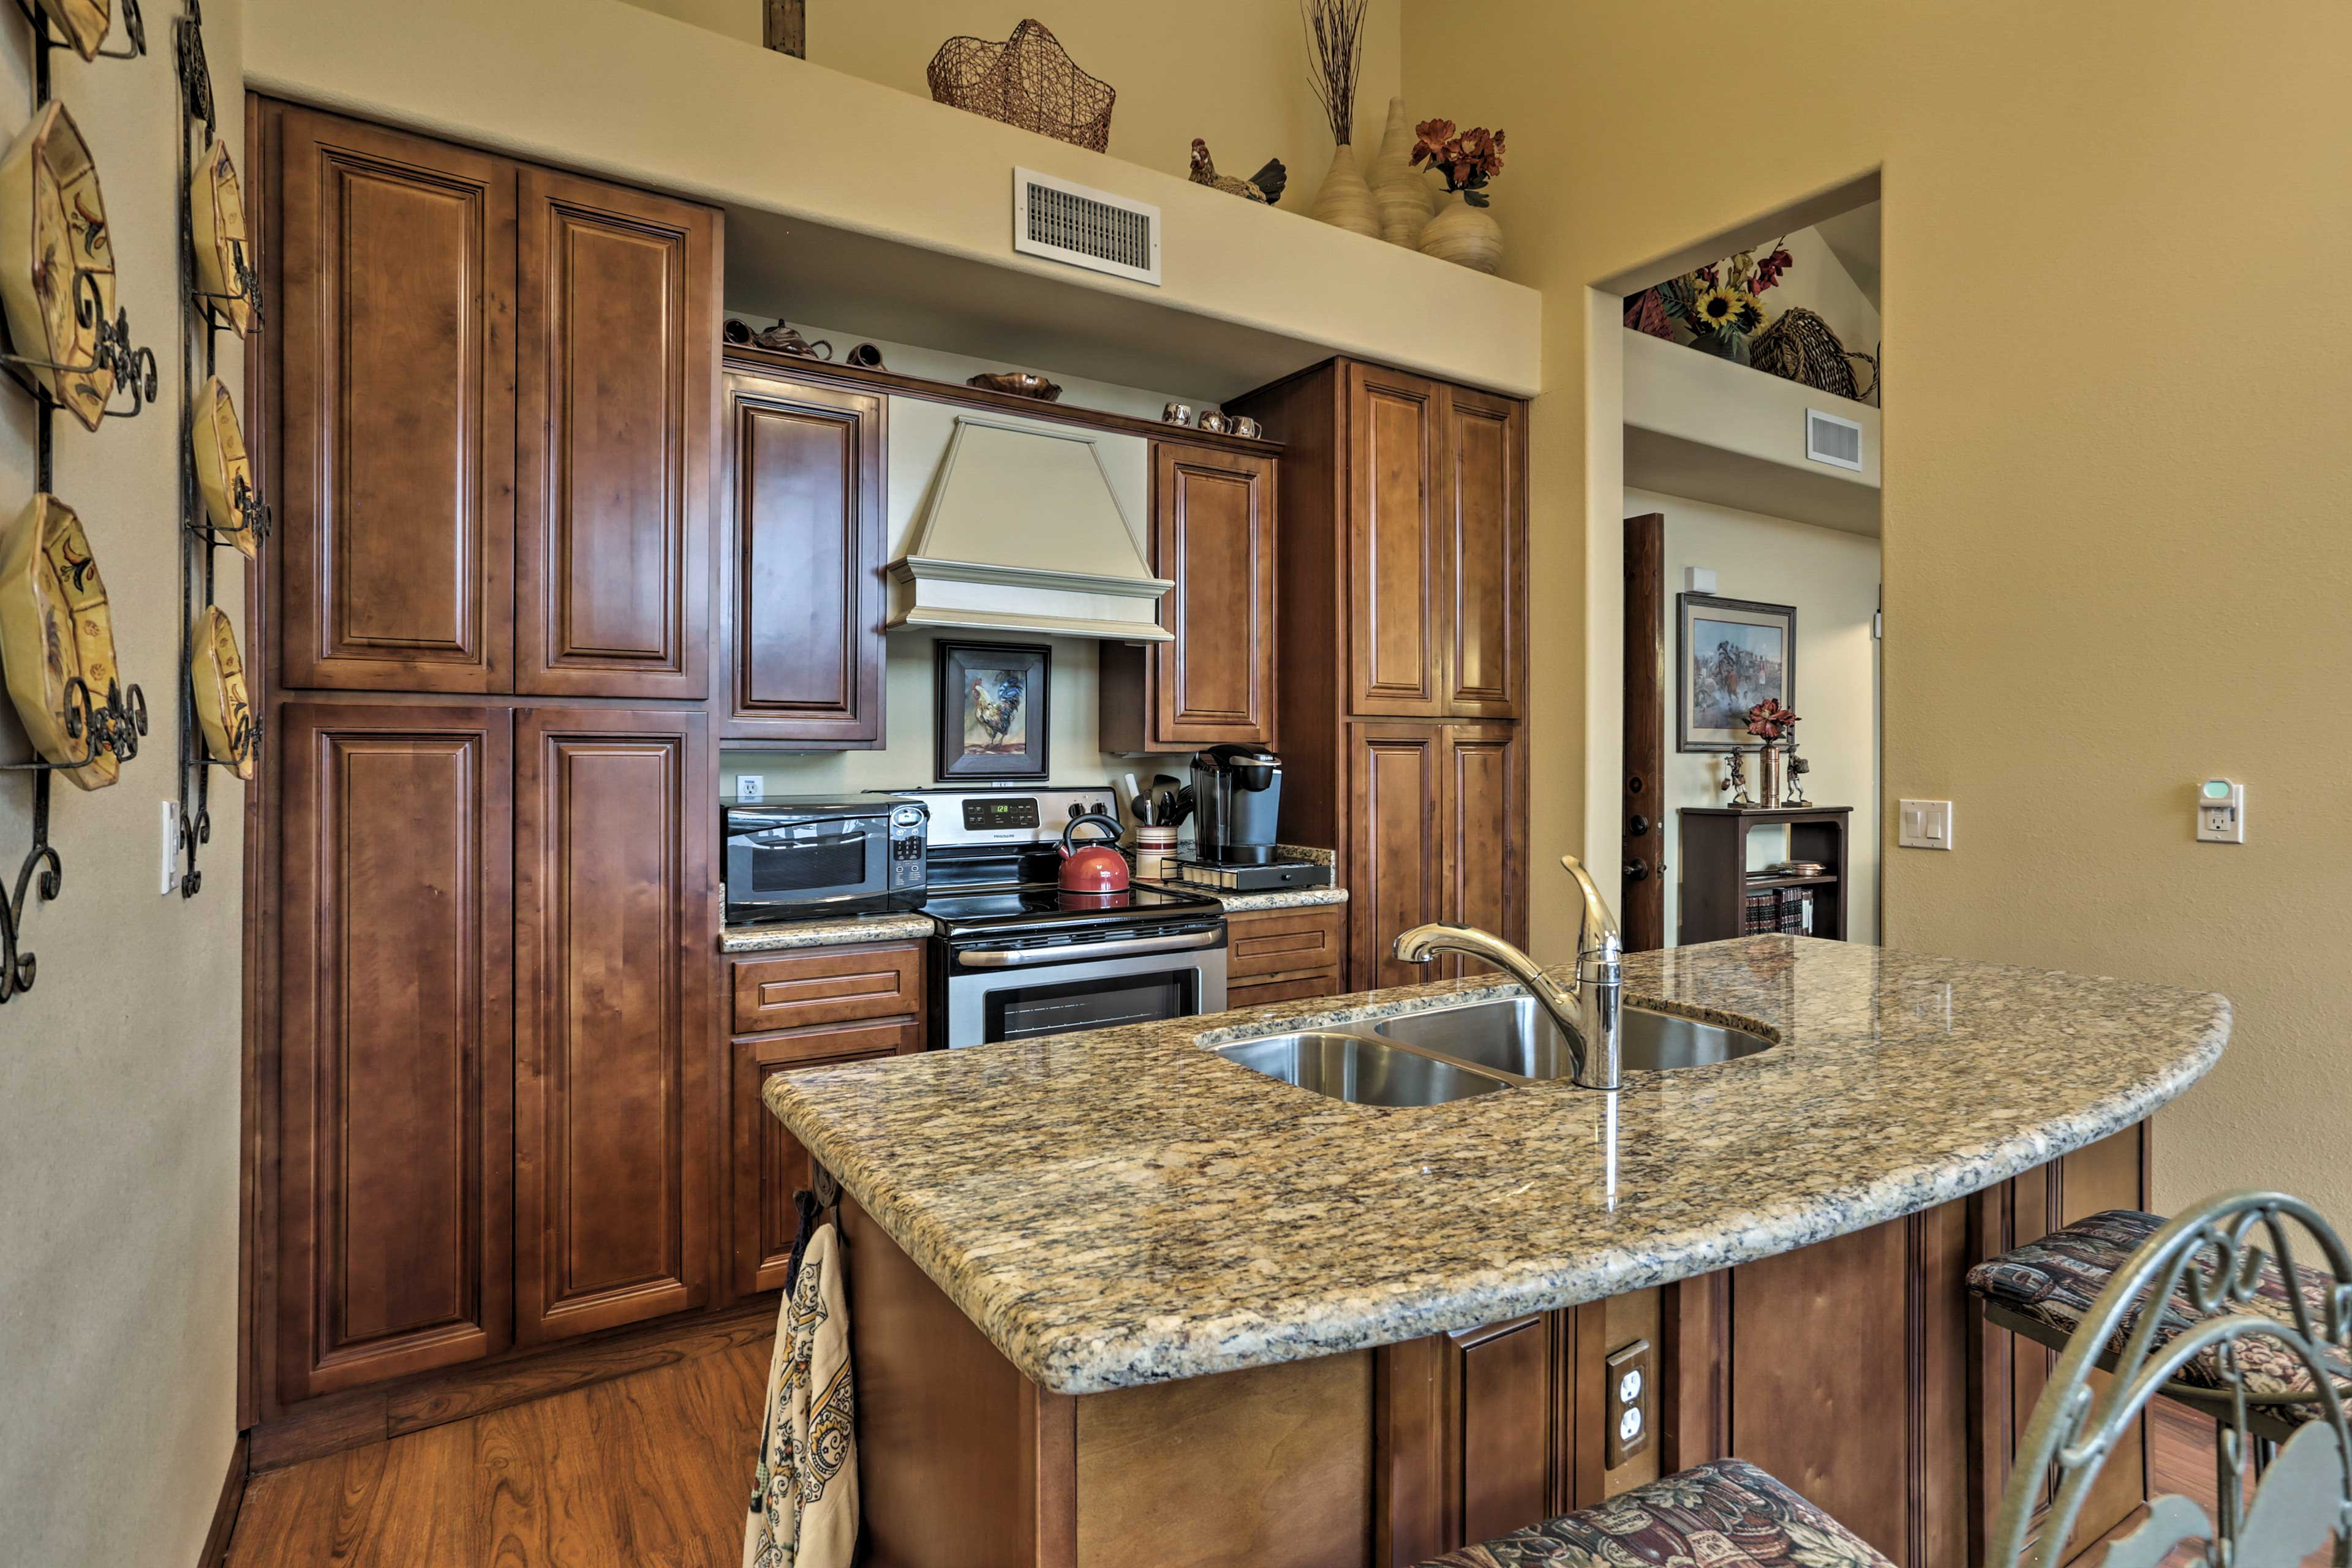 Home-cooking is a breeze in the fully equipped kitchen!